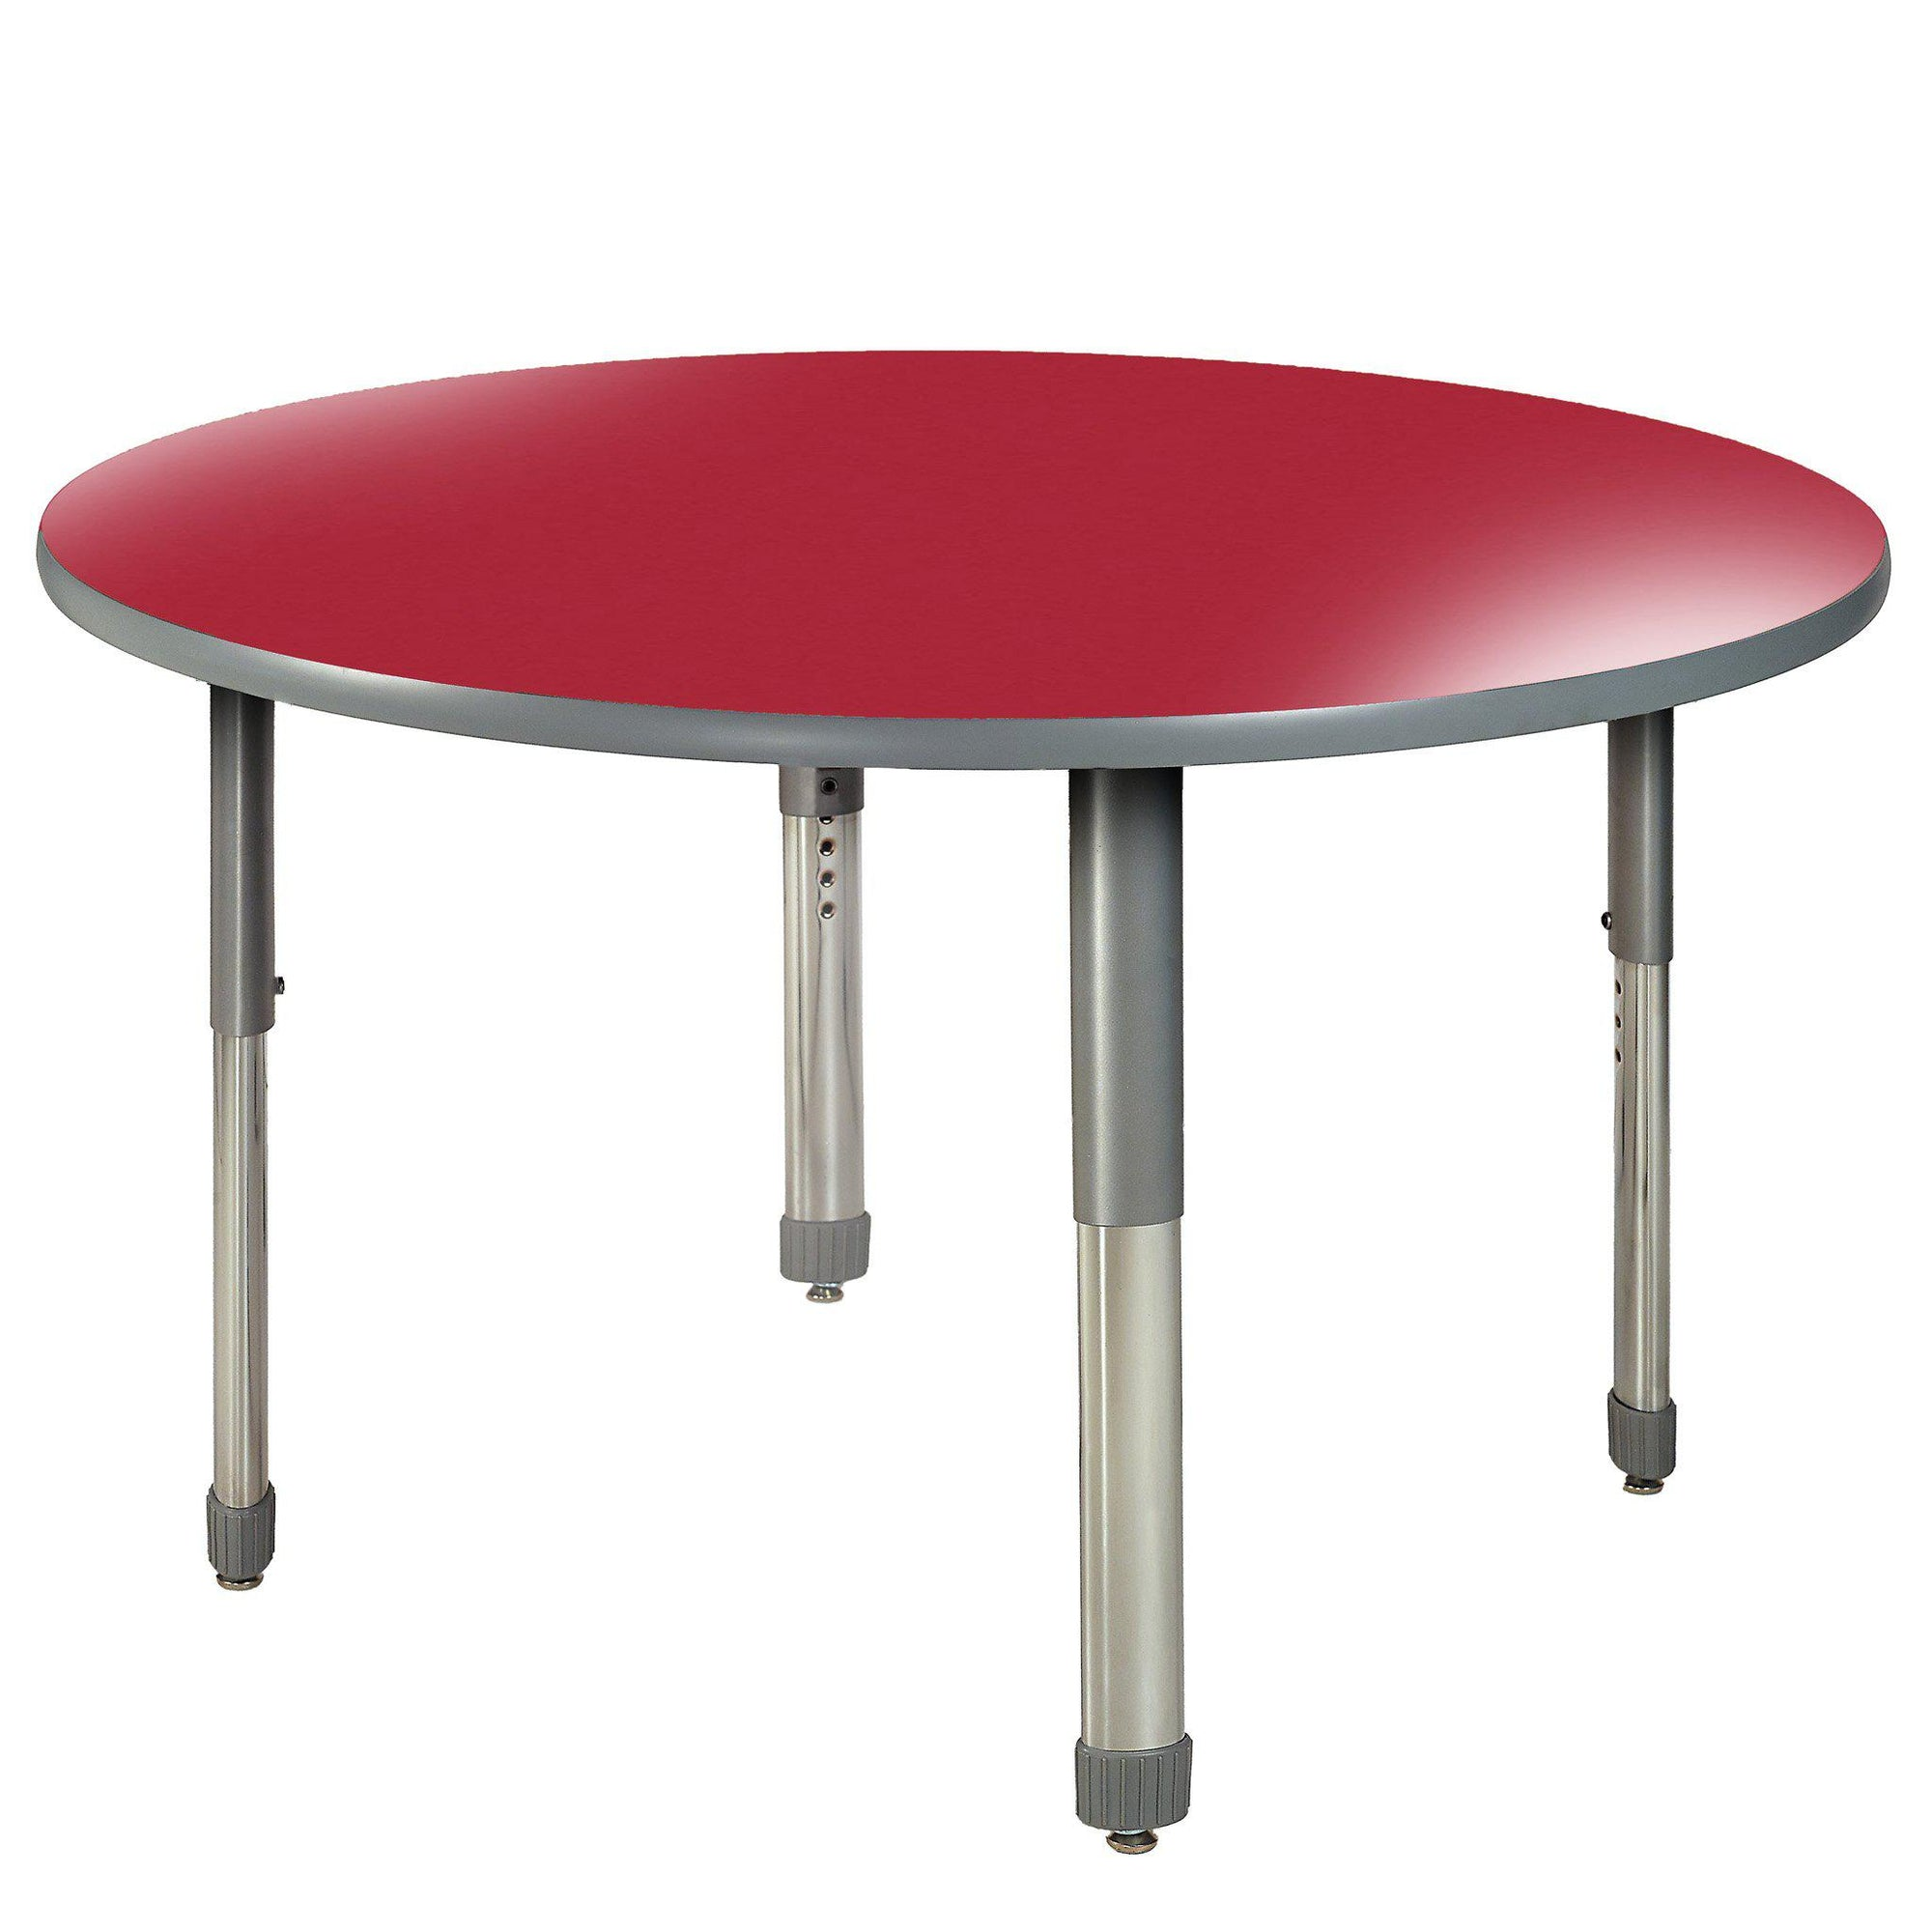 "Aero Activity Table, 60"" Circle, Oval Adjustable Height Legs"